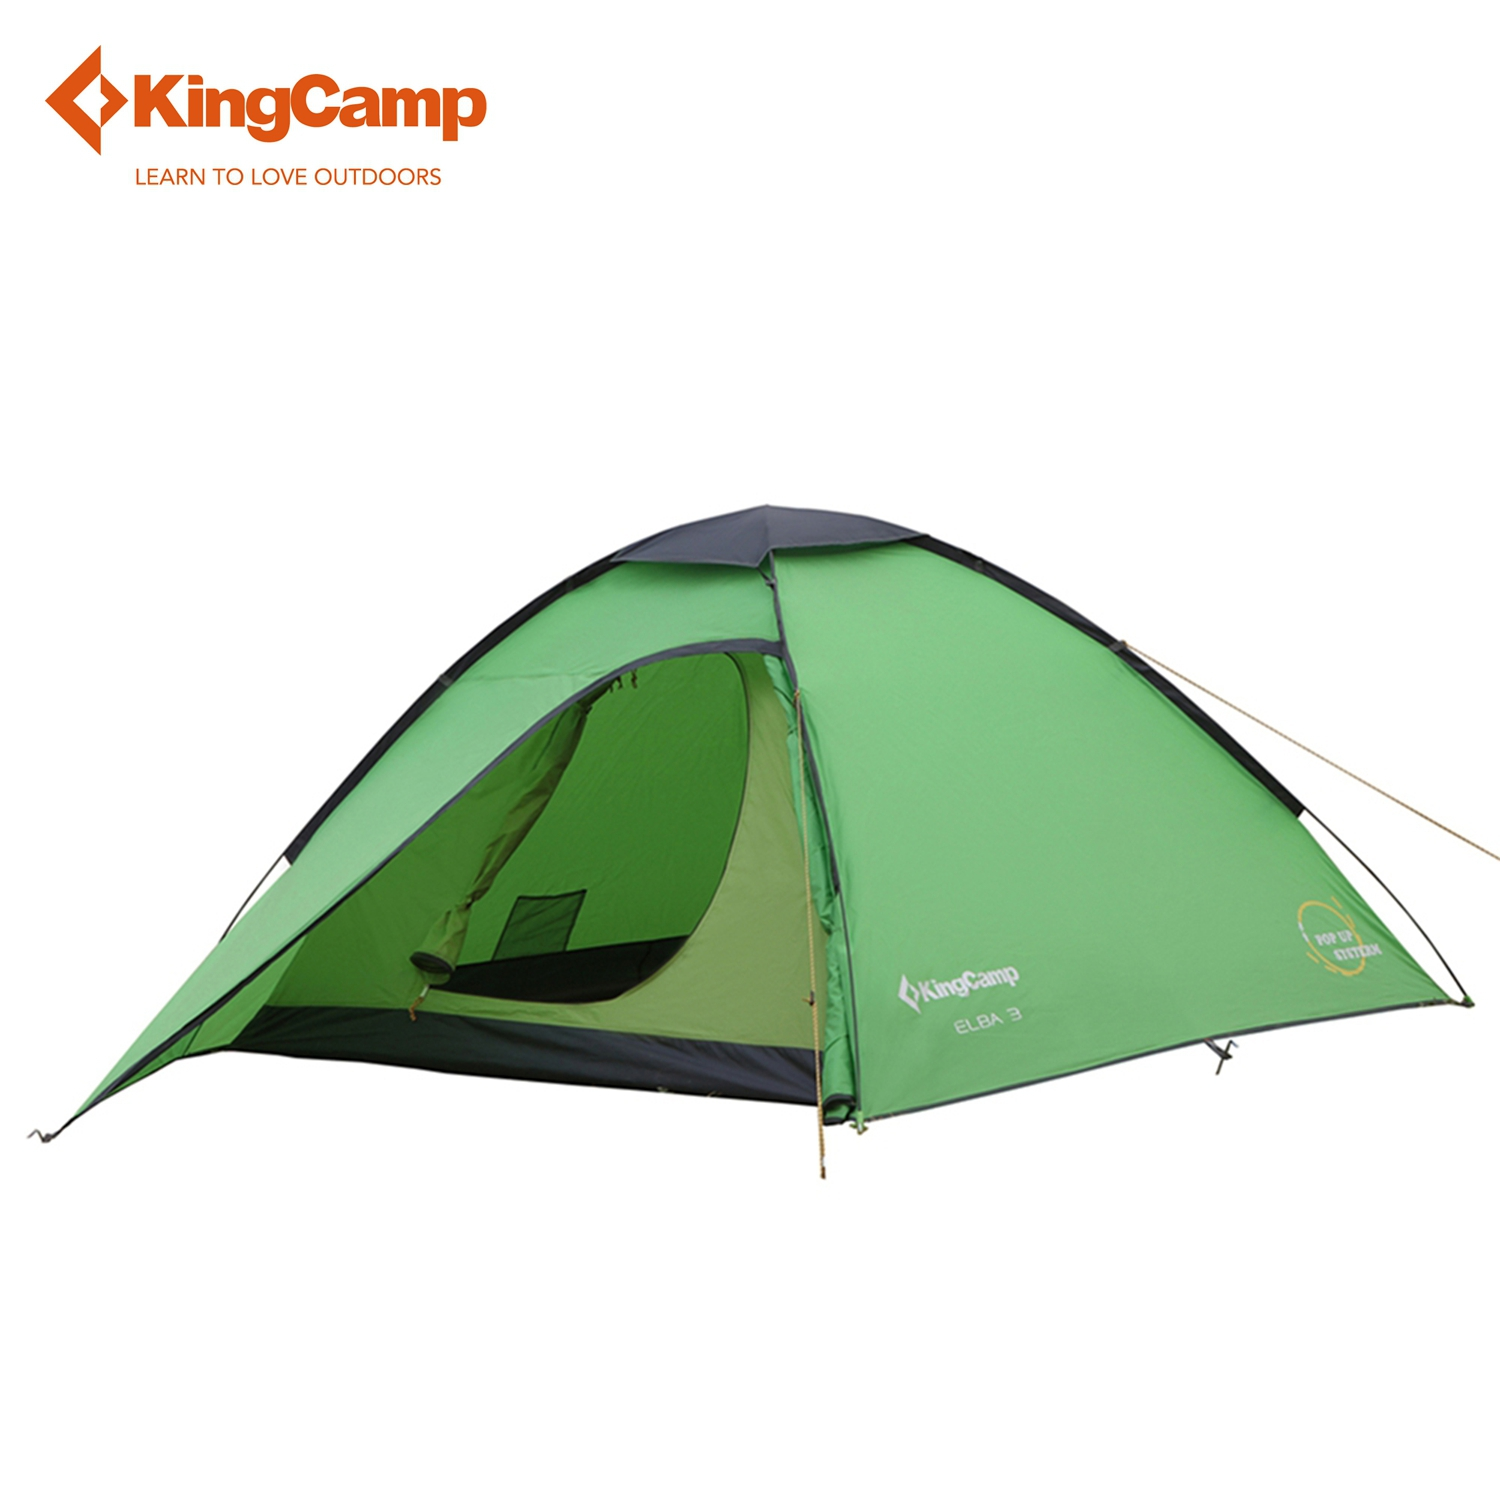 KingCamp ELBA 3-Person 3-Season Outdoor Portable Lightweight Instant Dome Pop up tent With Carry Bag for Camping Backpacking